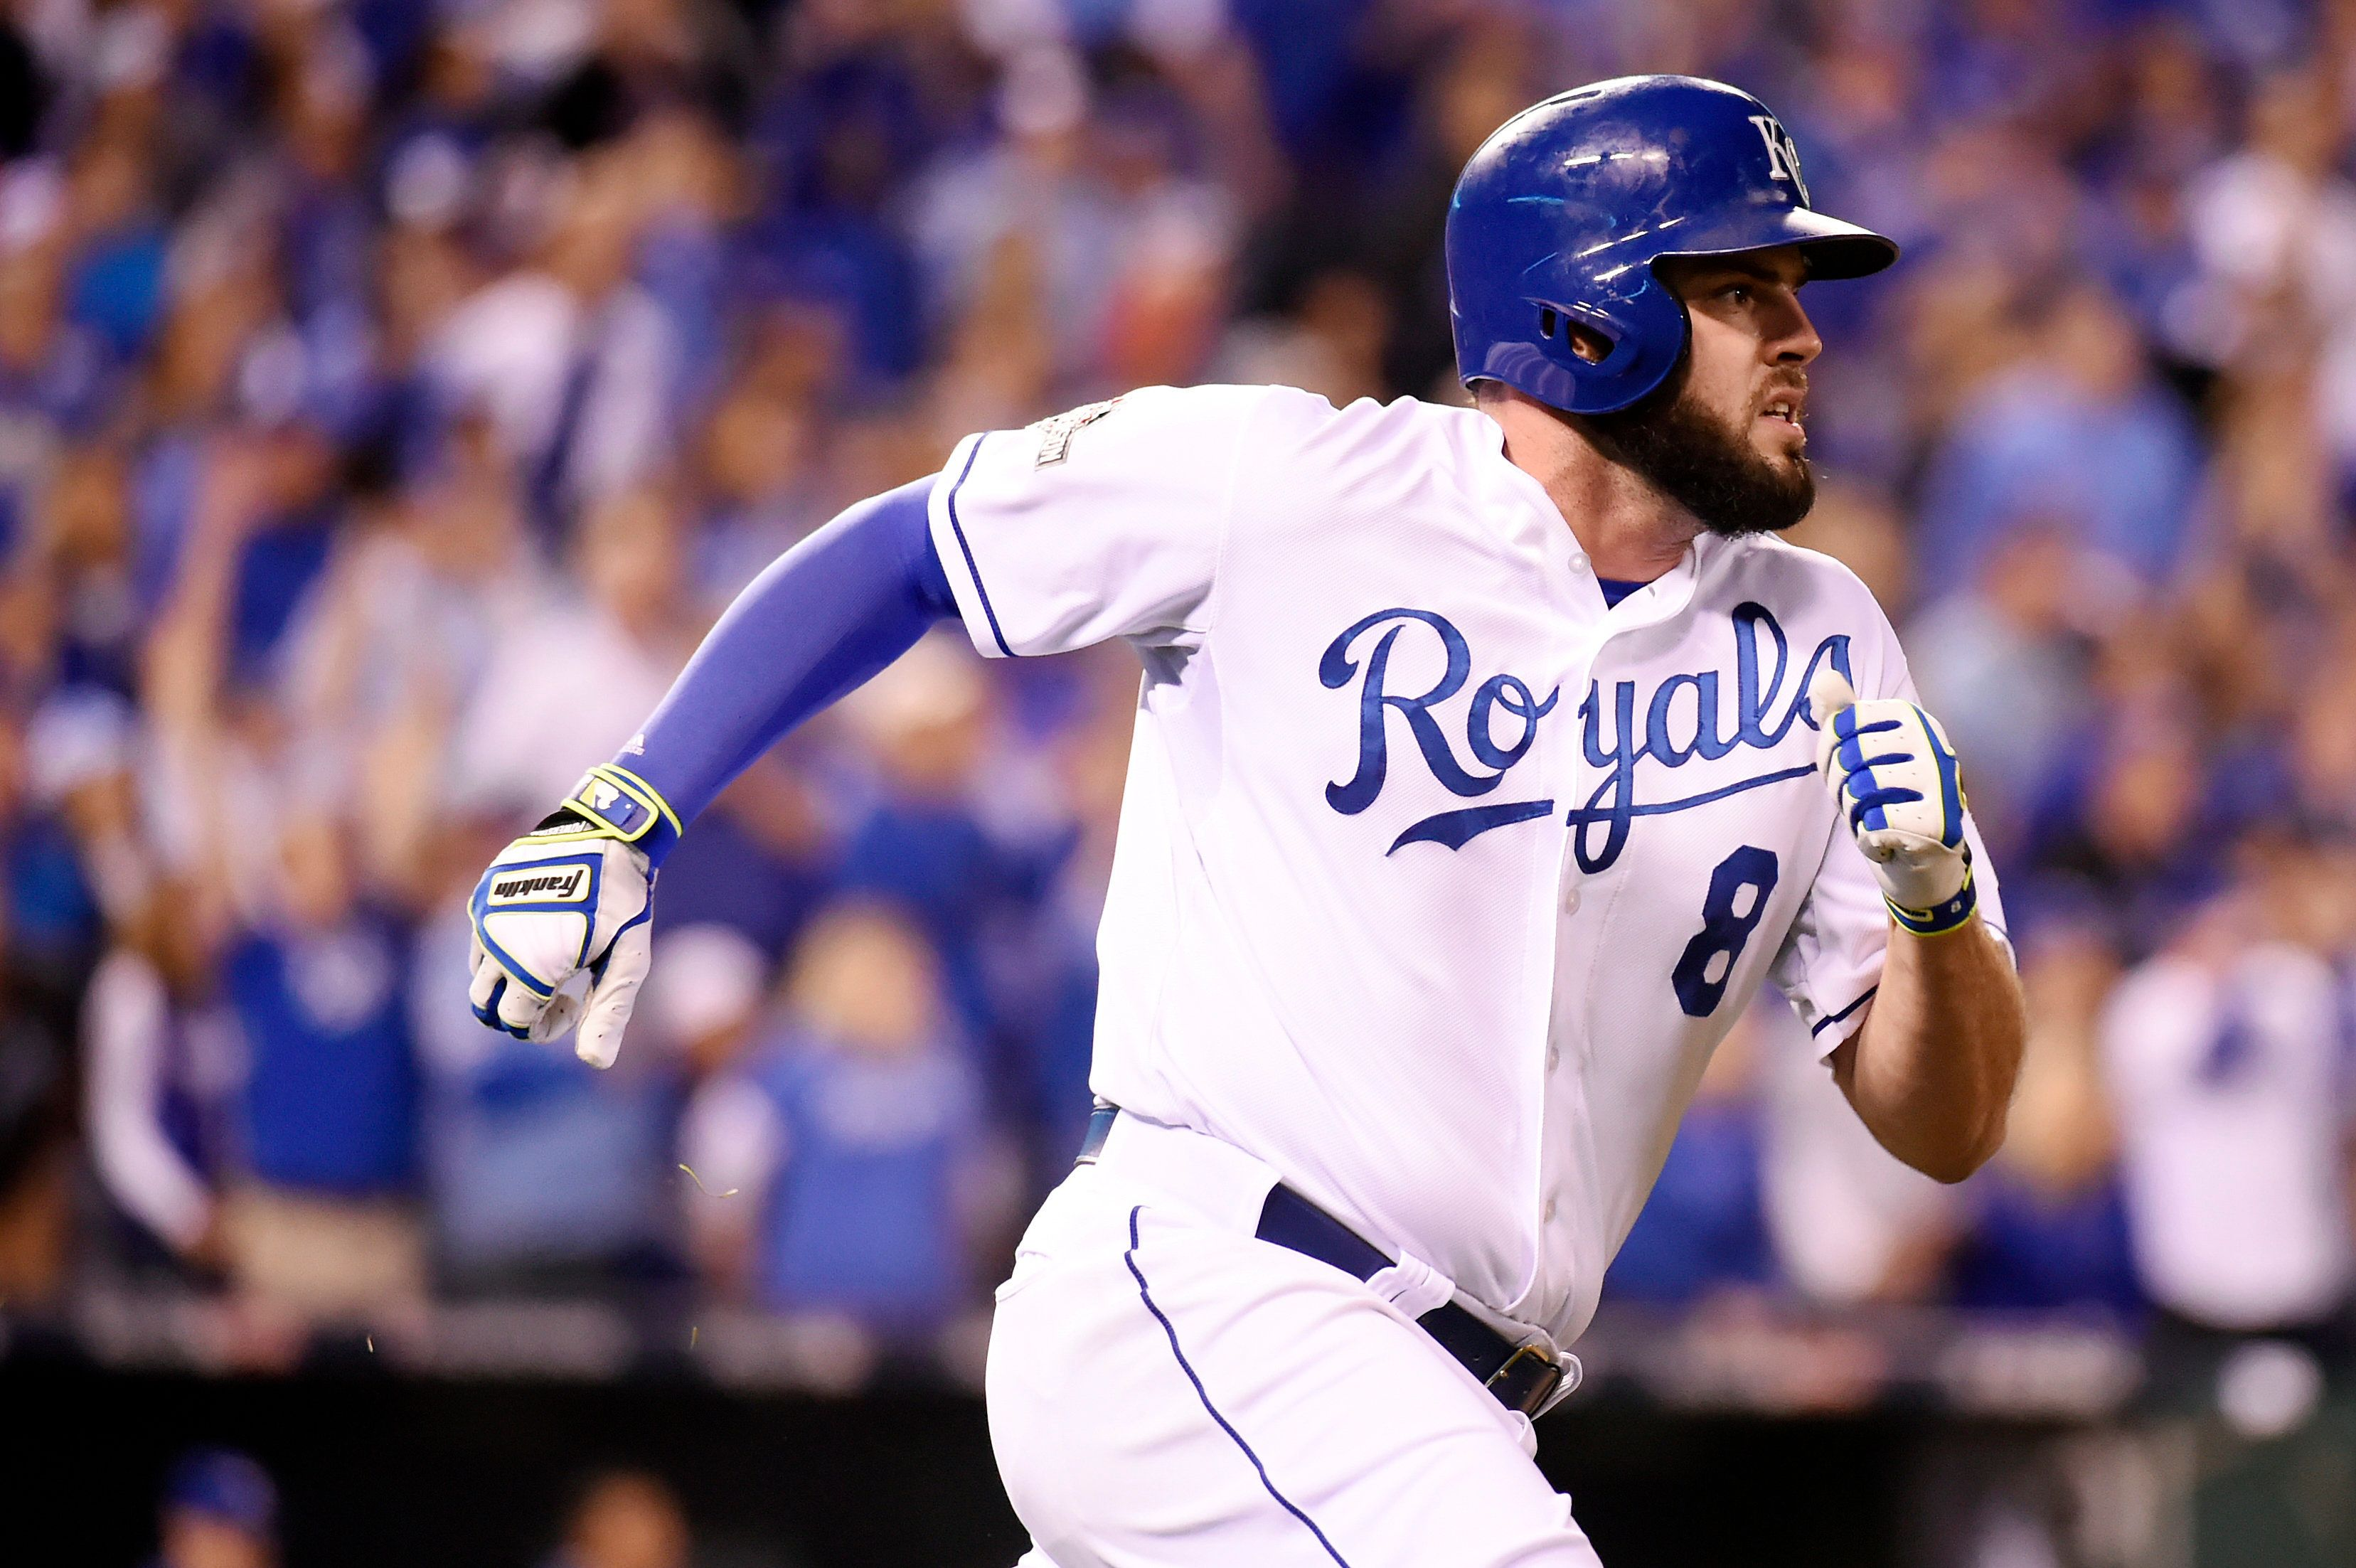 """<span class='image-component__caption' itemprop=""""caption"""">Mike Moustakas #8 of the Kansas City Royals rounds the bases after hitting a home run in the second inning during Game 6 of the ALCS against the Toronto Blue Jays at Kauffman Stadium on Friday, October 23, 2015 in Kansas City Missouri.</span>"""